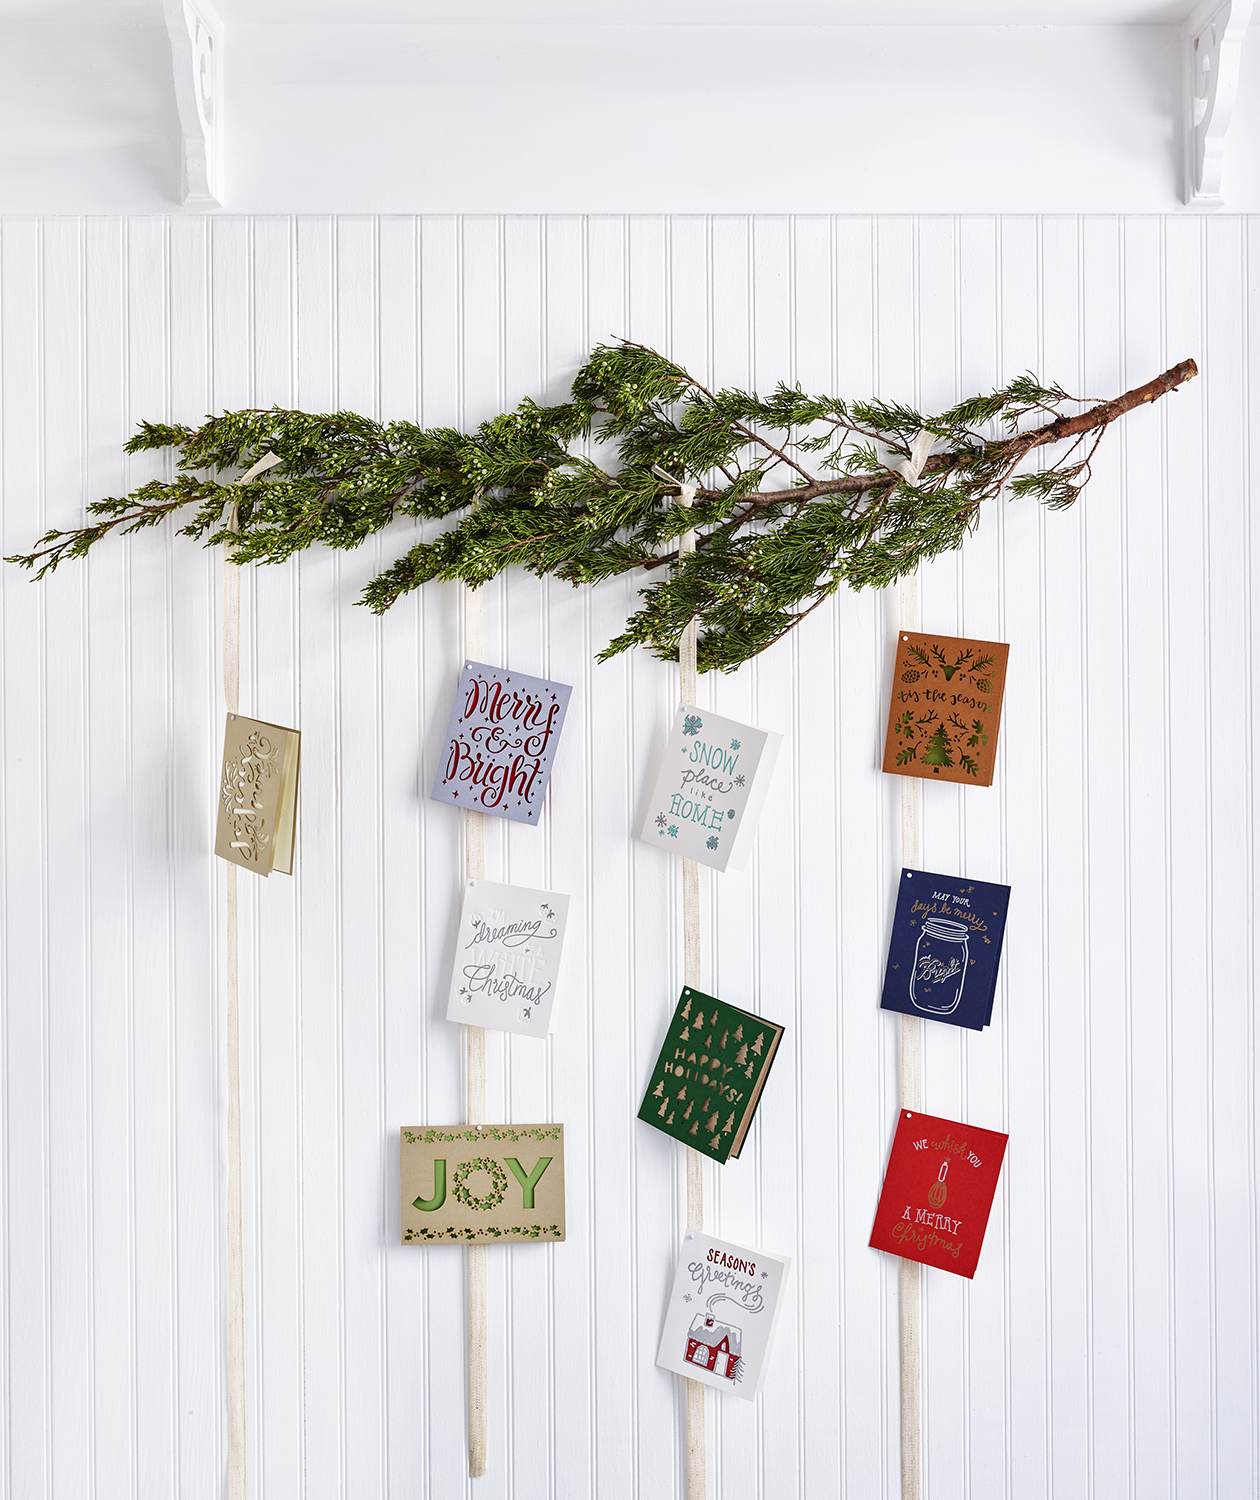 17 Easy Christmas Decorations | Real Simple